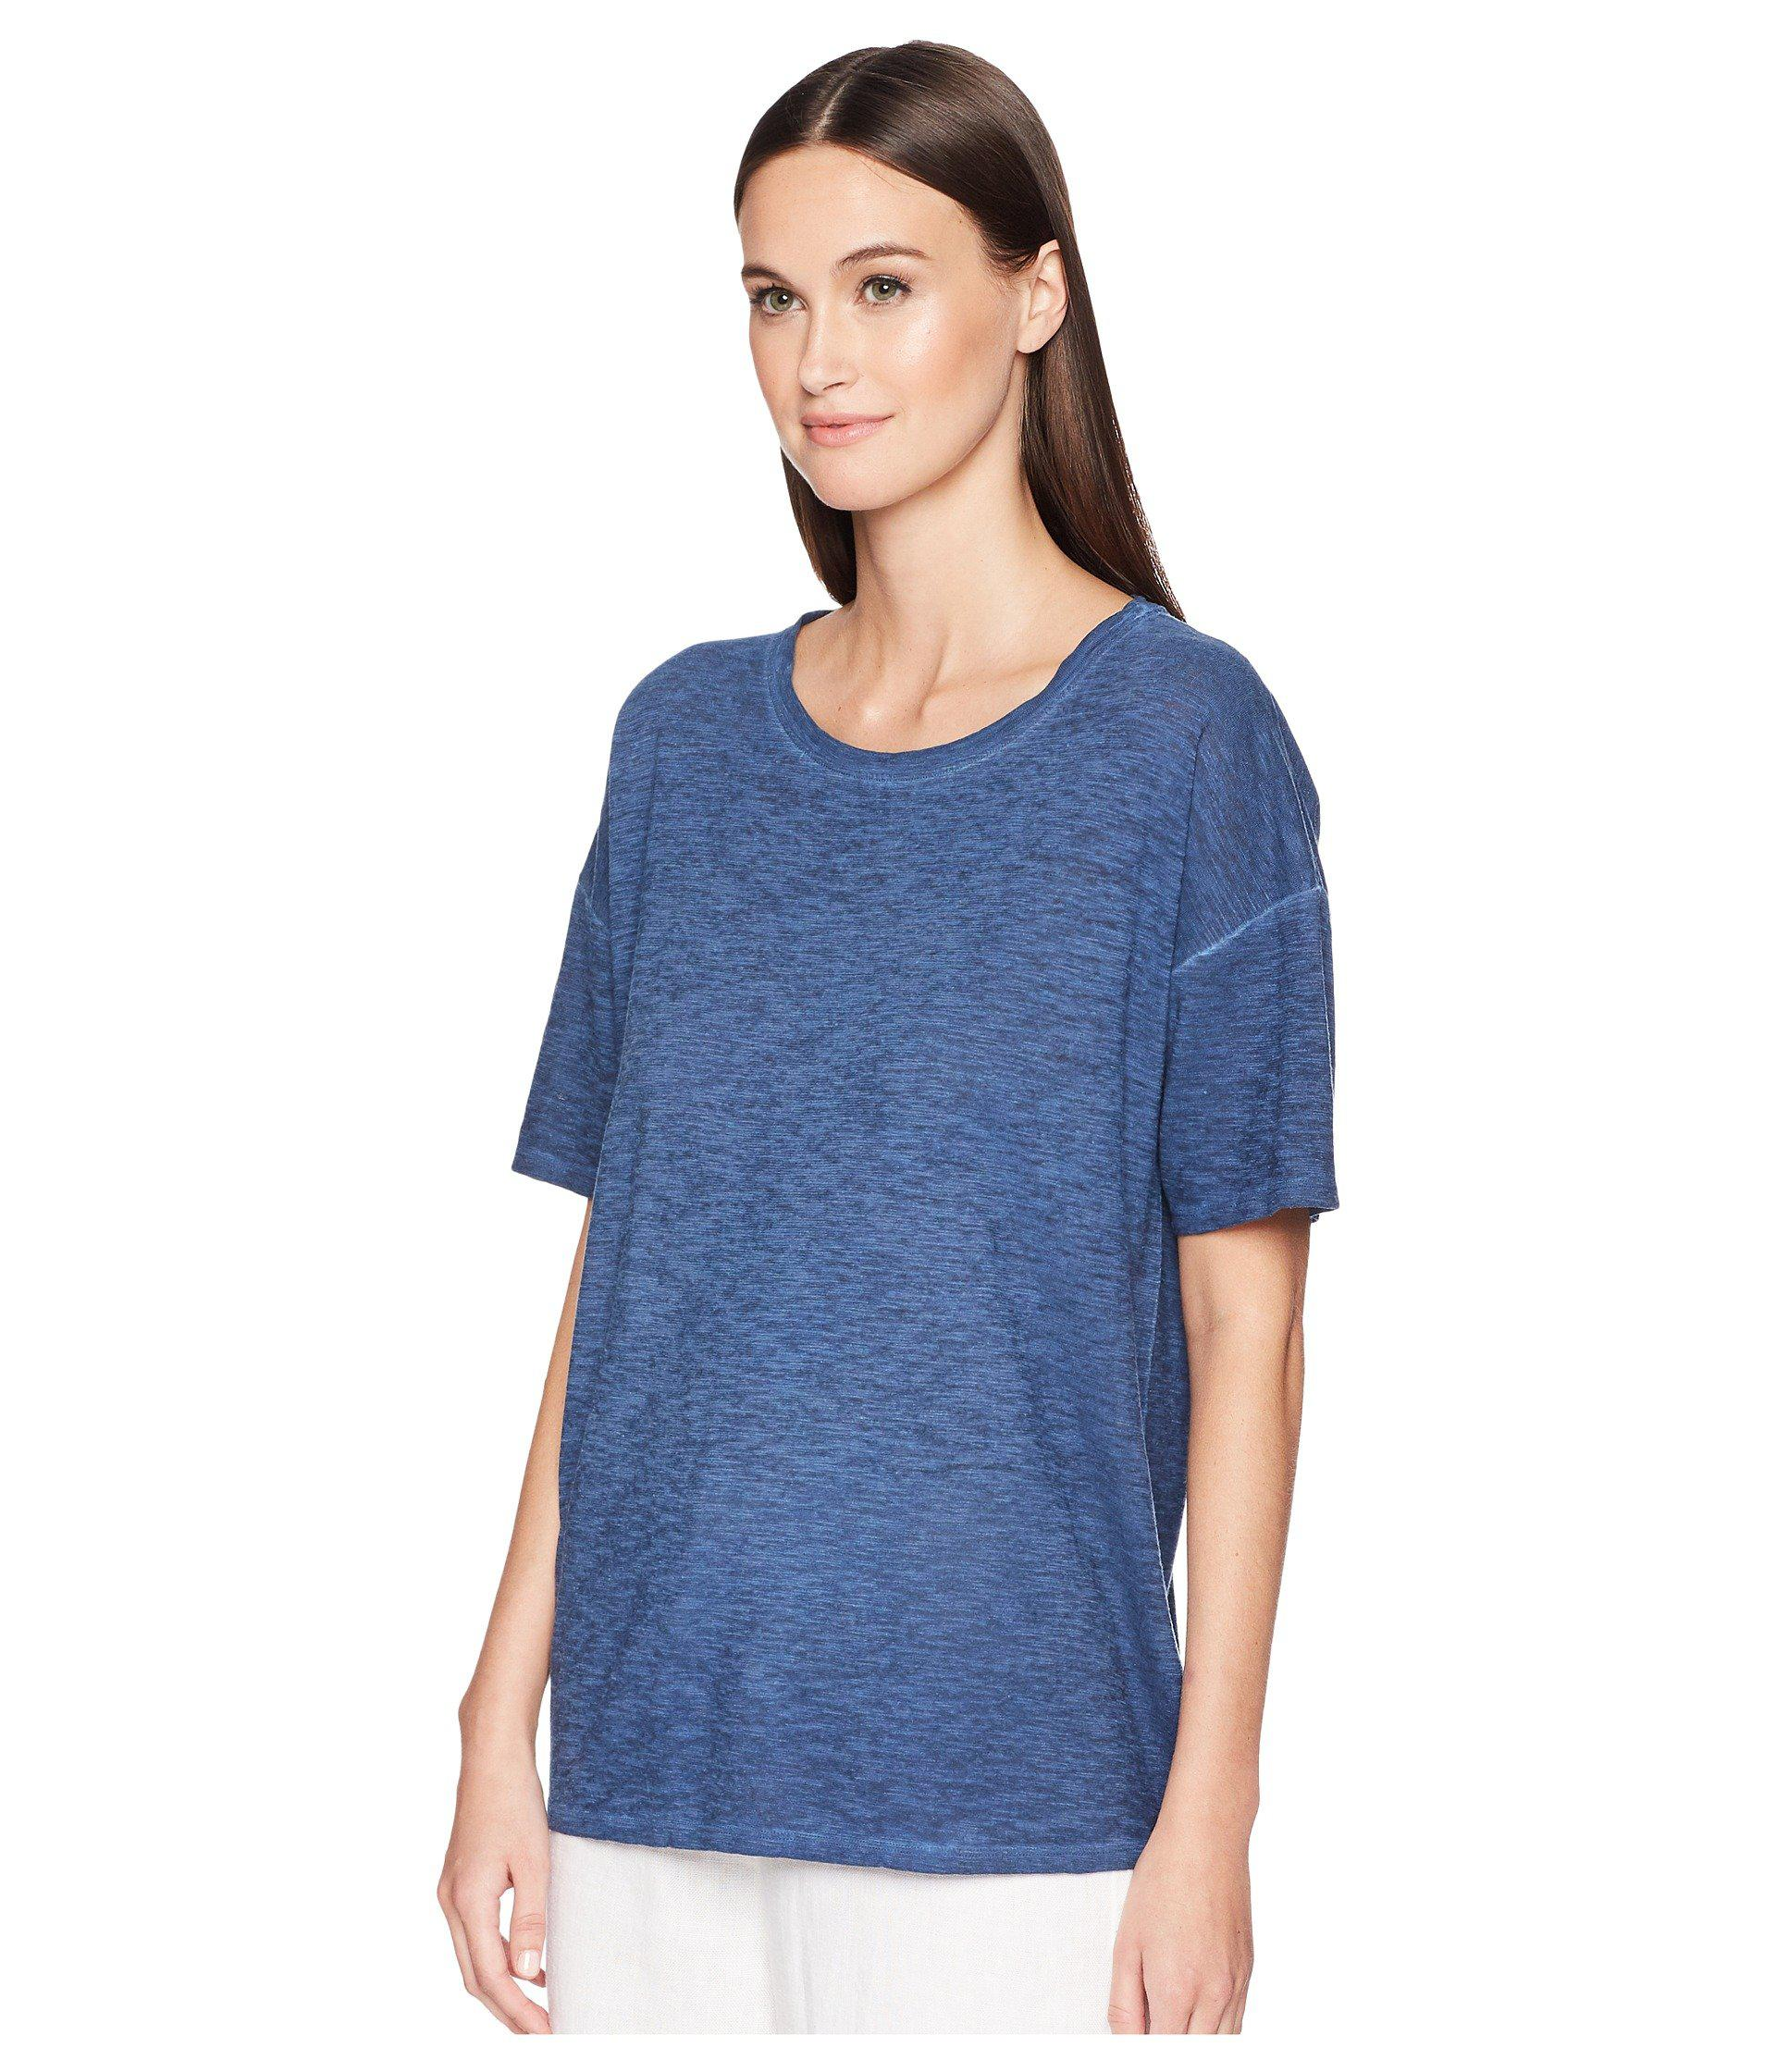 4c0bbac7e8b4af Lyst - Eileen Fisher Jewel Neck Box-top in Blue - Save 51%